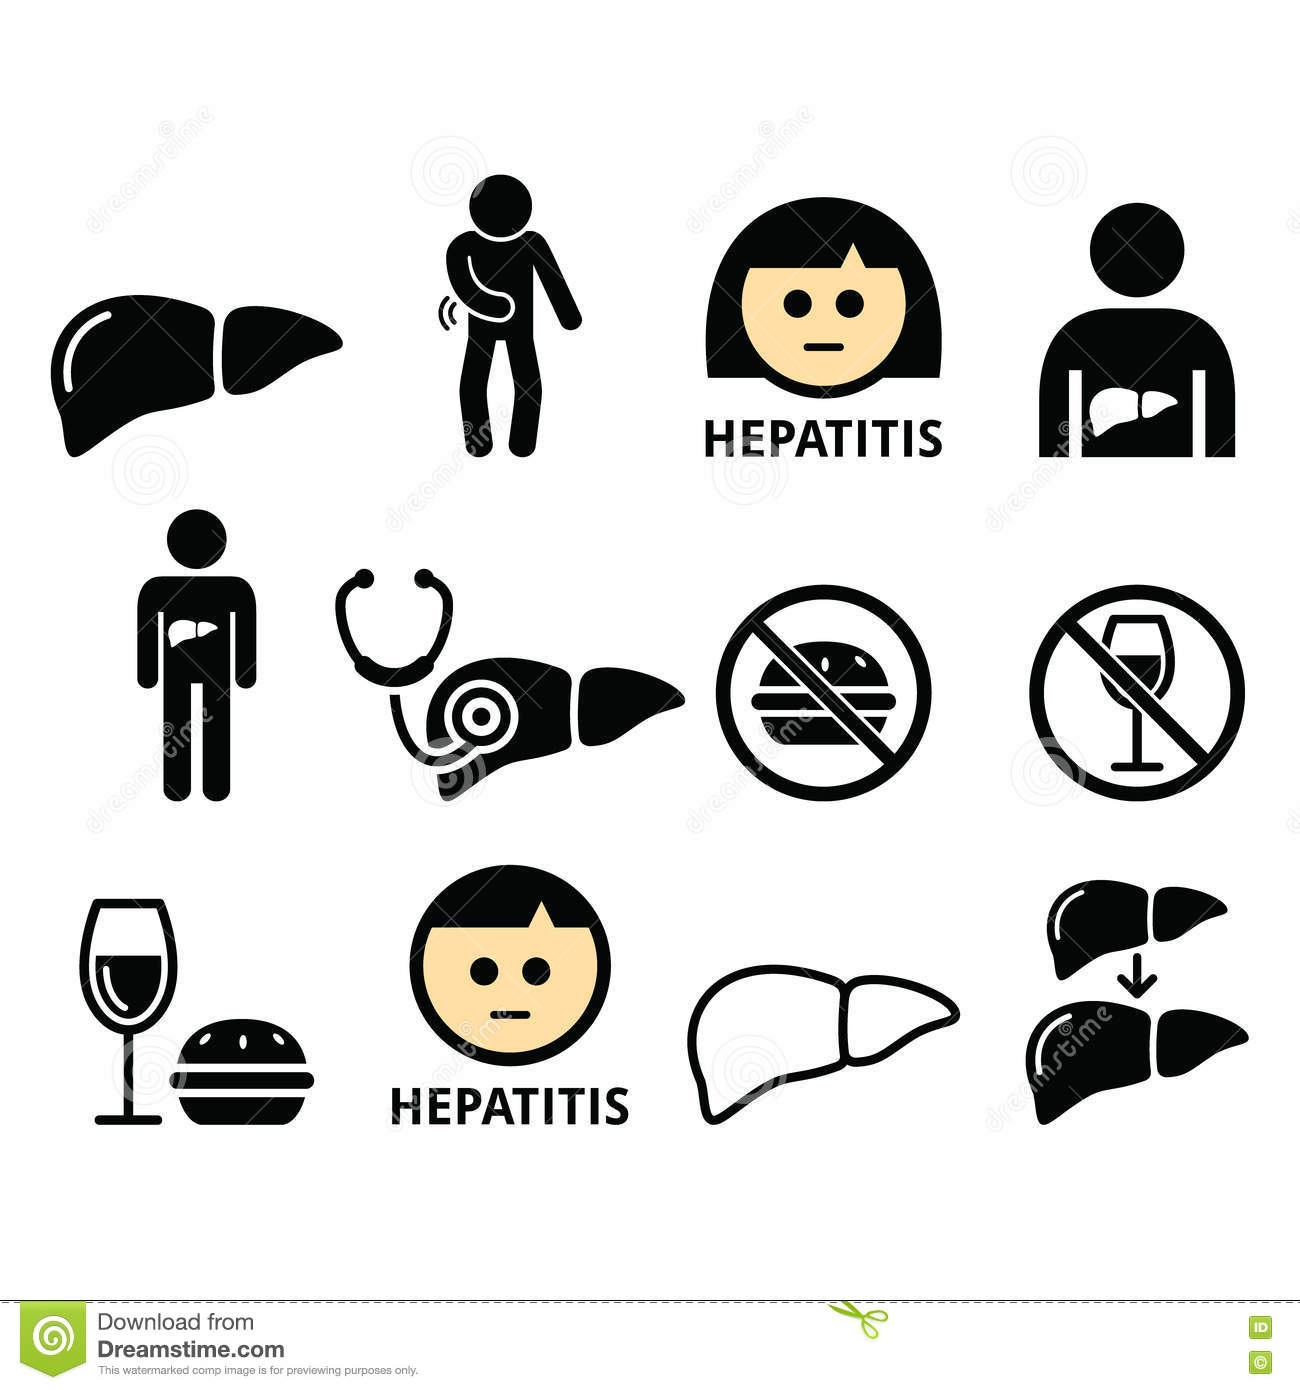 Alcoholic Liver Disease Vector Illustration